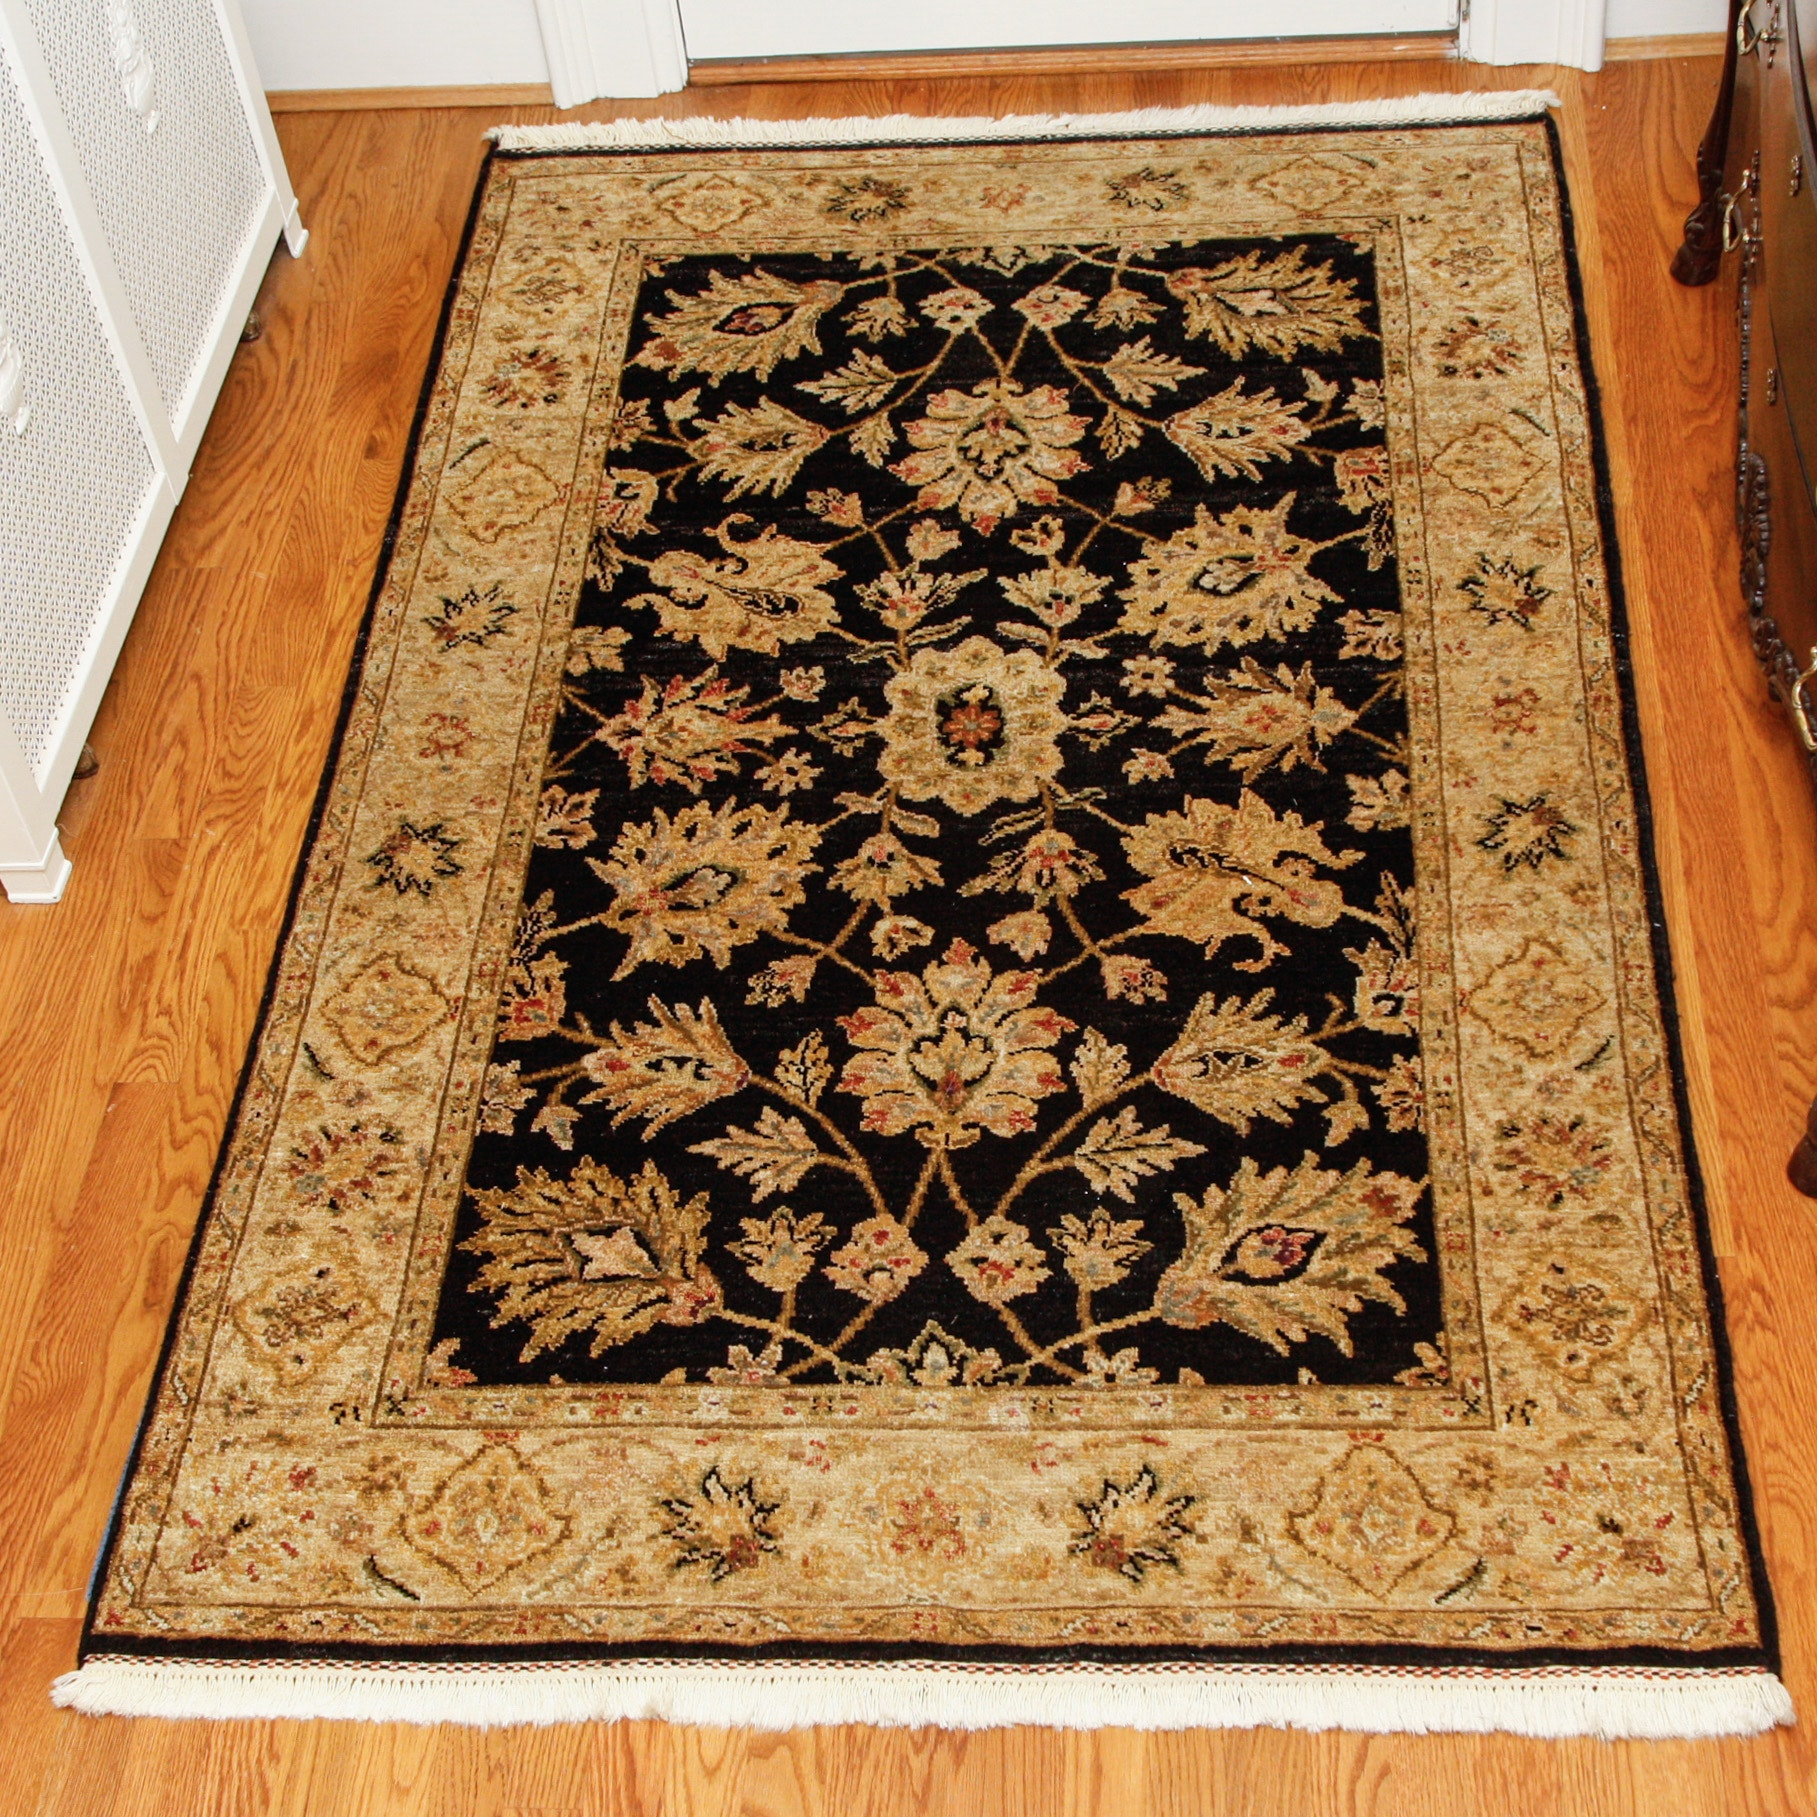 Hand Knotted Indian Wool Area Rug By The Rug Gallery ...